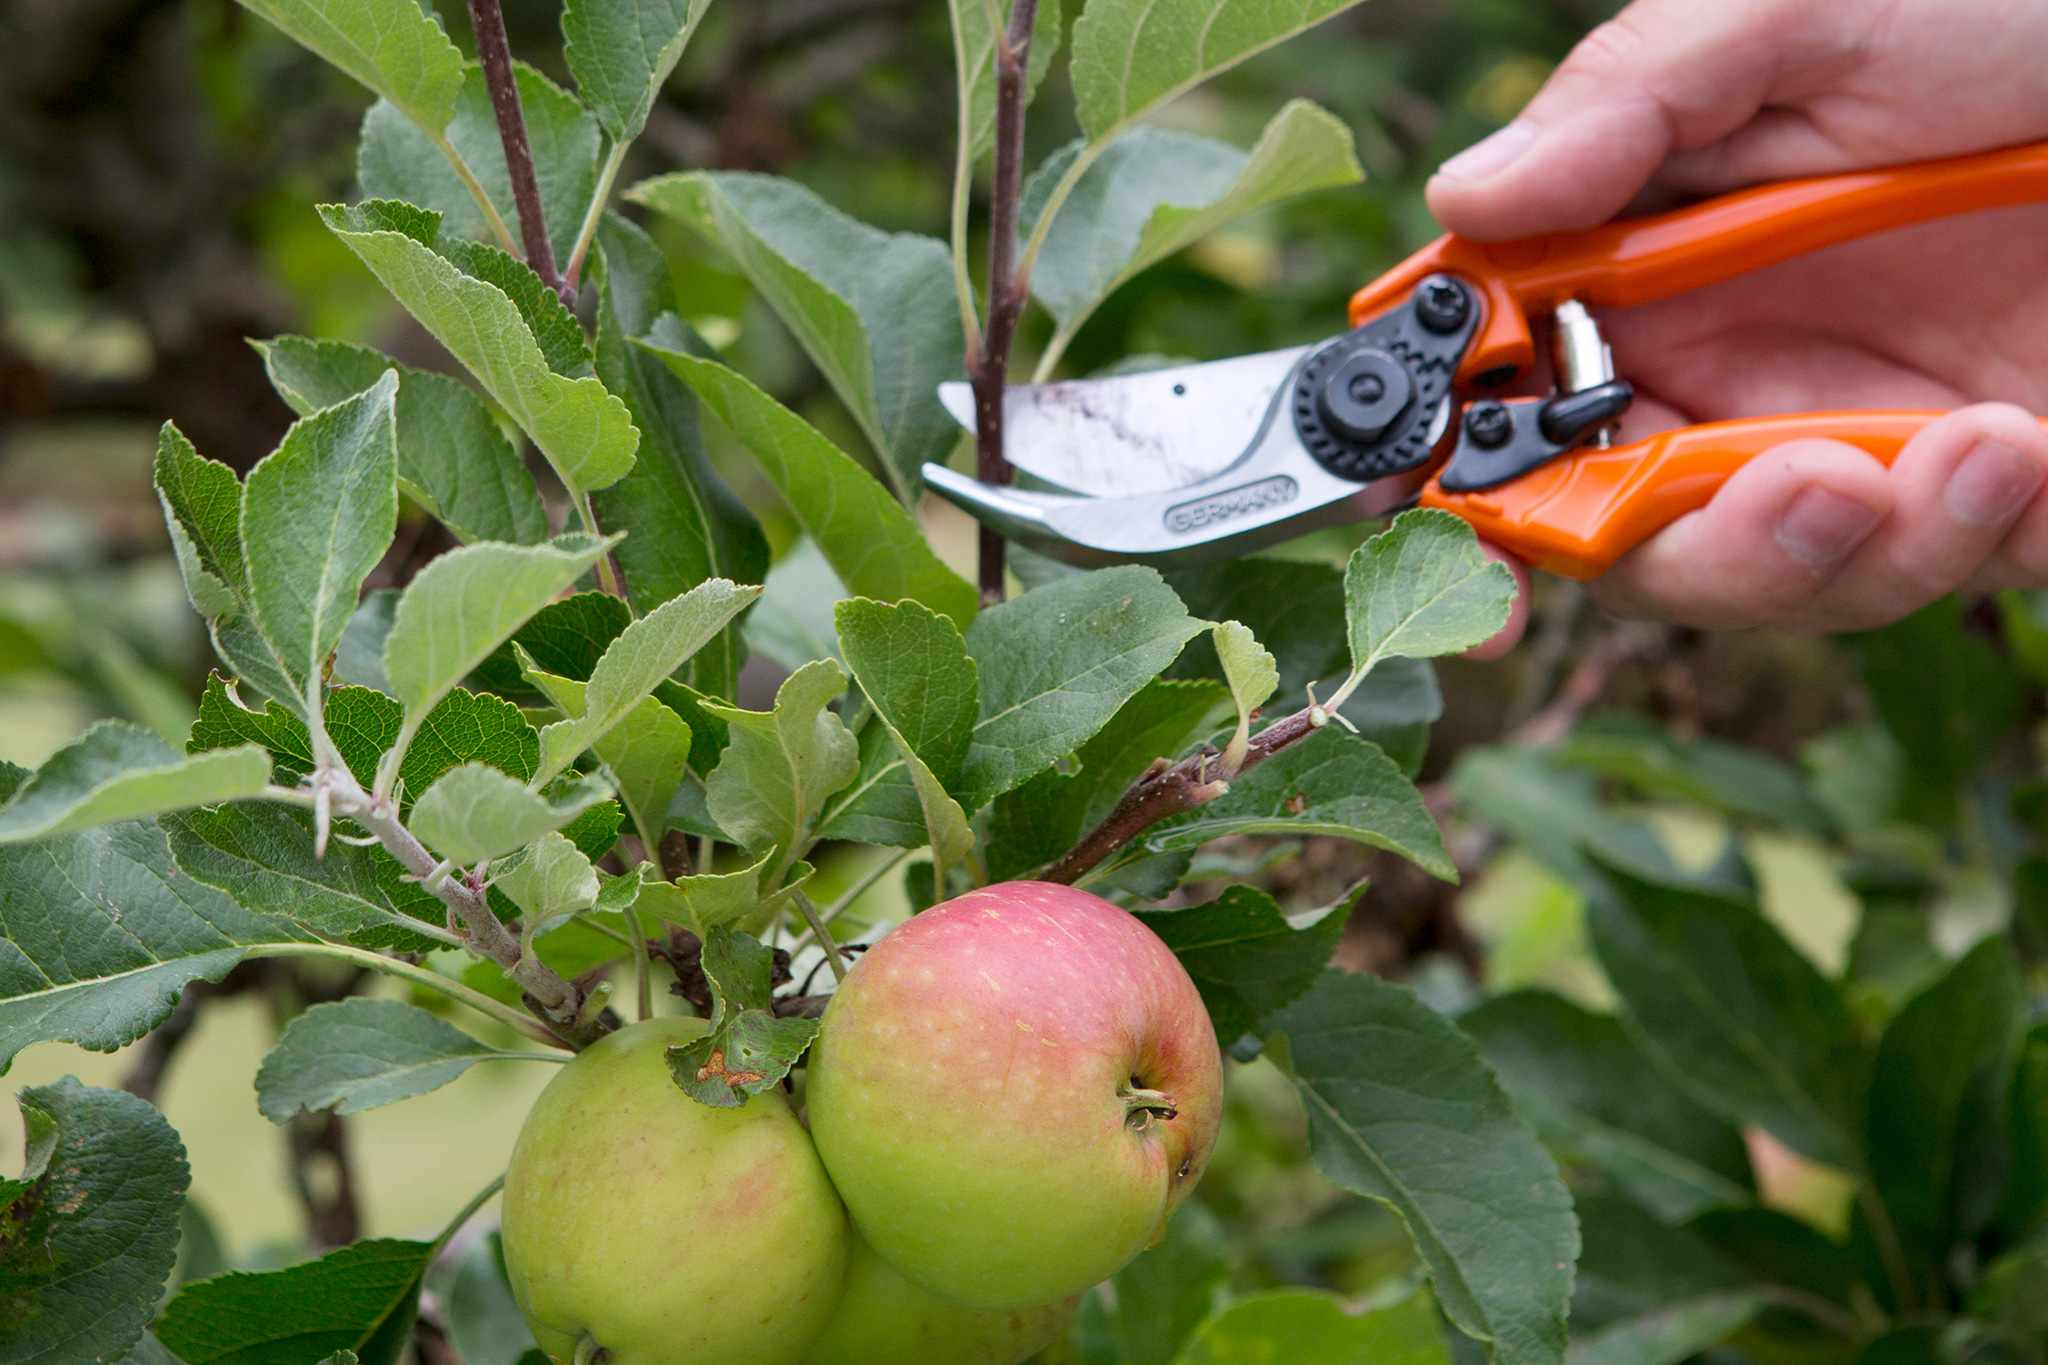 Pruning an apple tree in summer